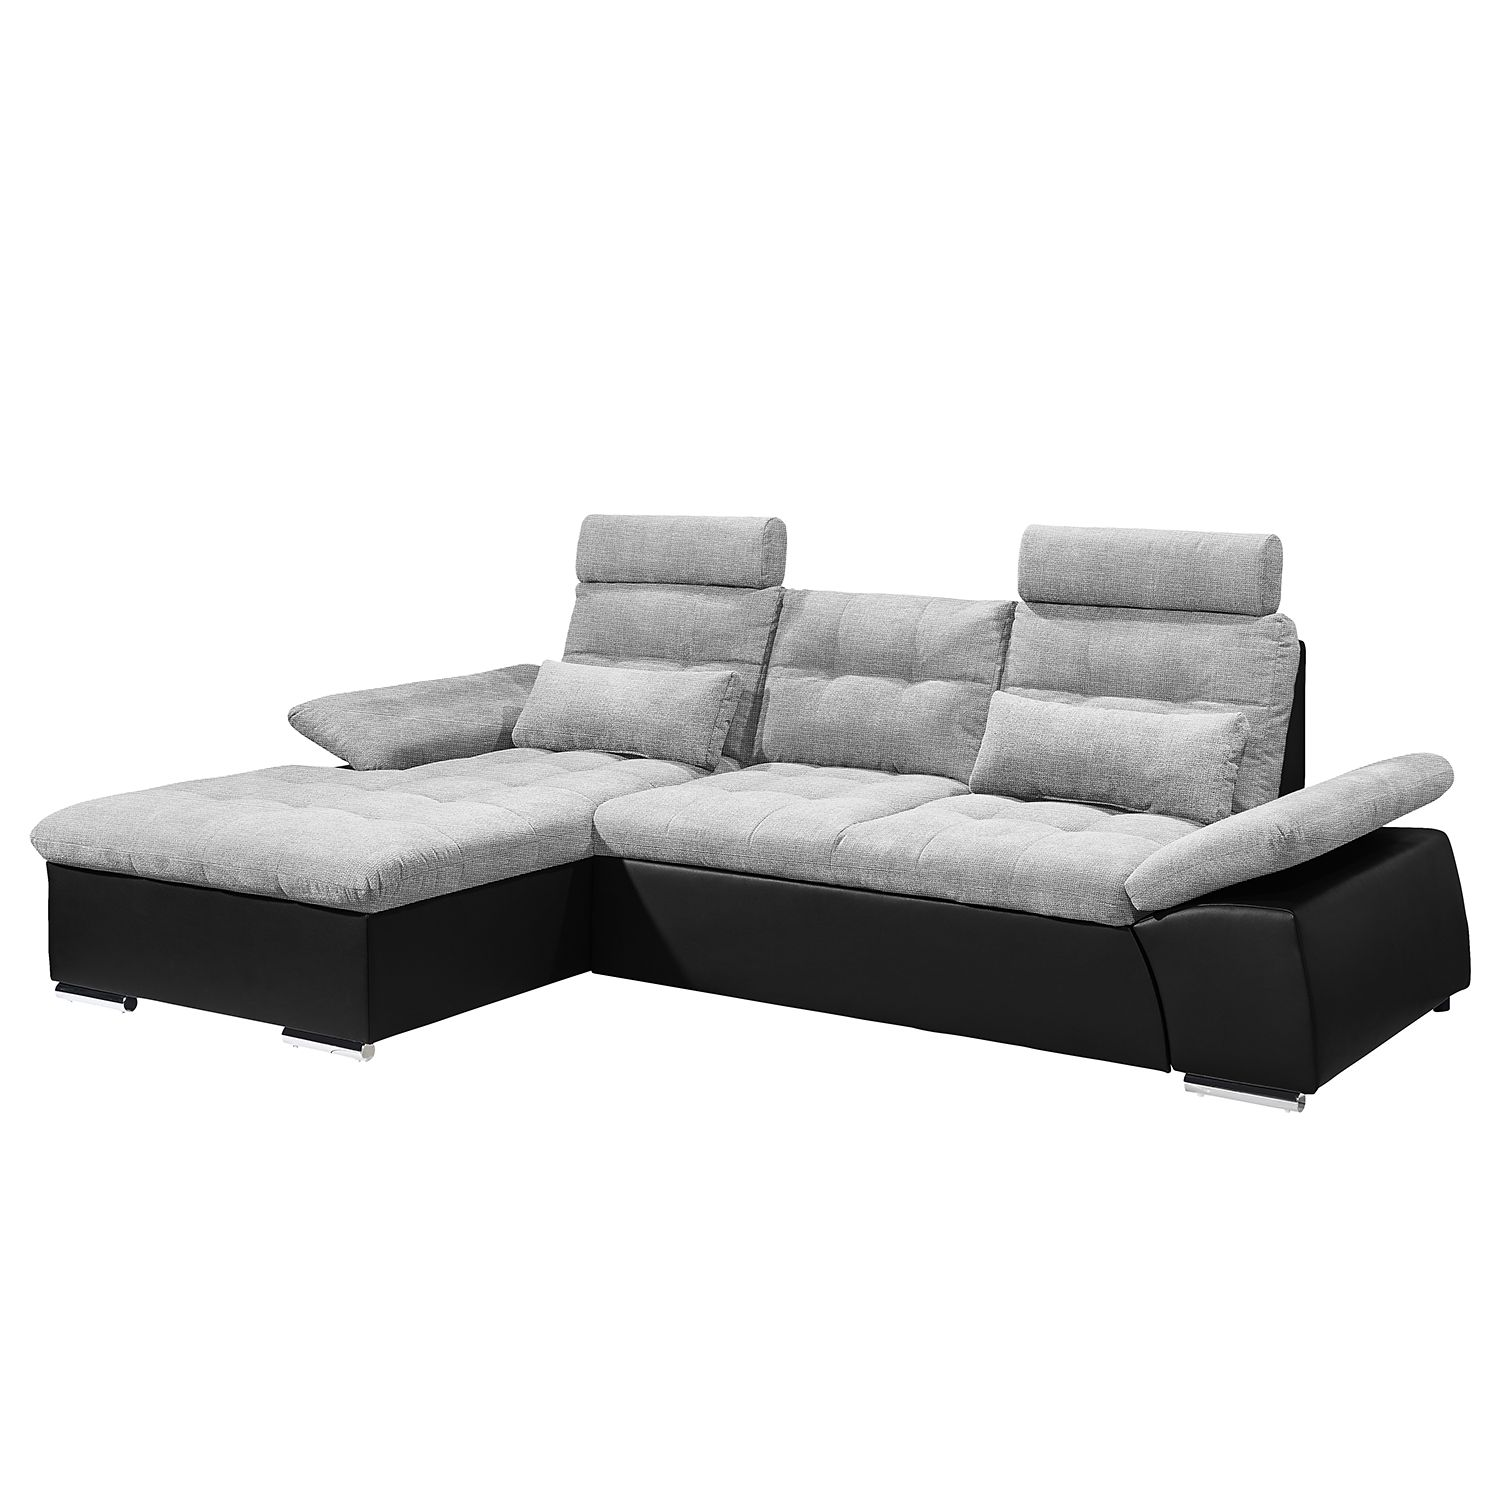 ecksofa puntiro mit schlaffunktion kunstleder webstoff. Black Bedroom Furniture Sets. Home Design Ideas